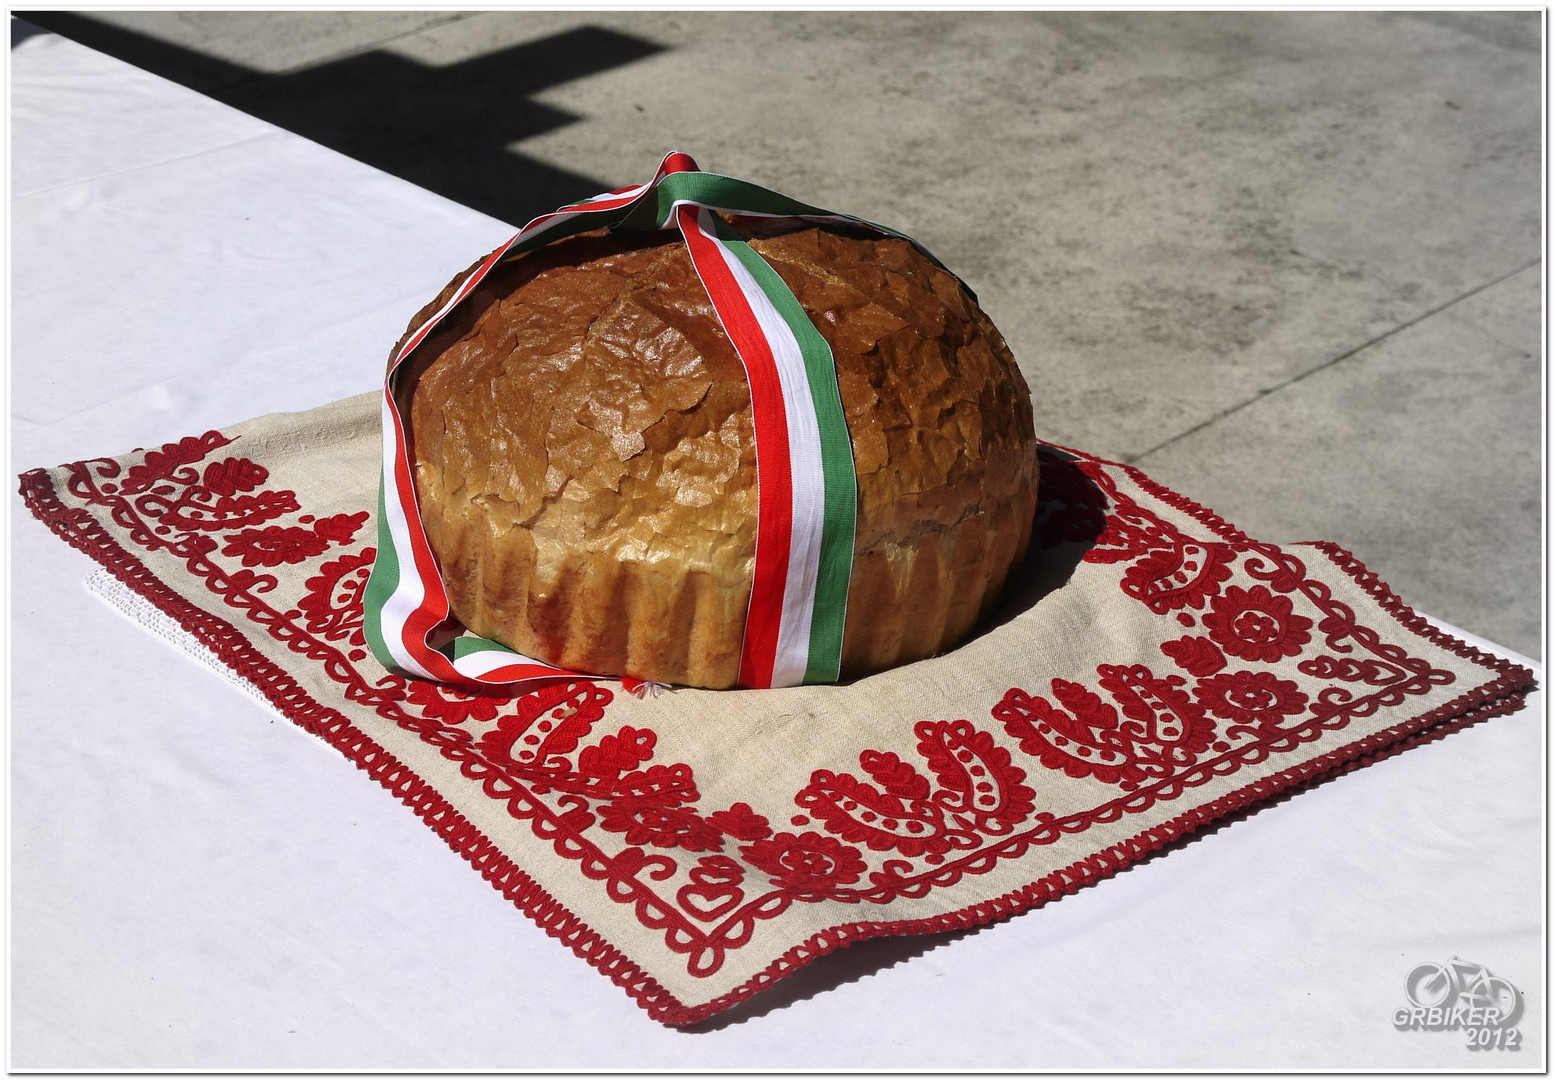 The new hungarian bread